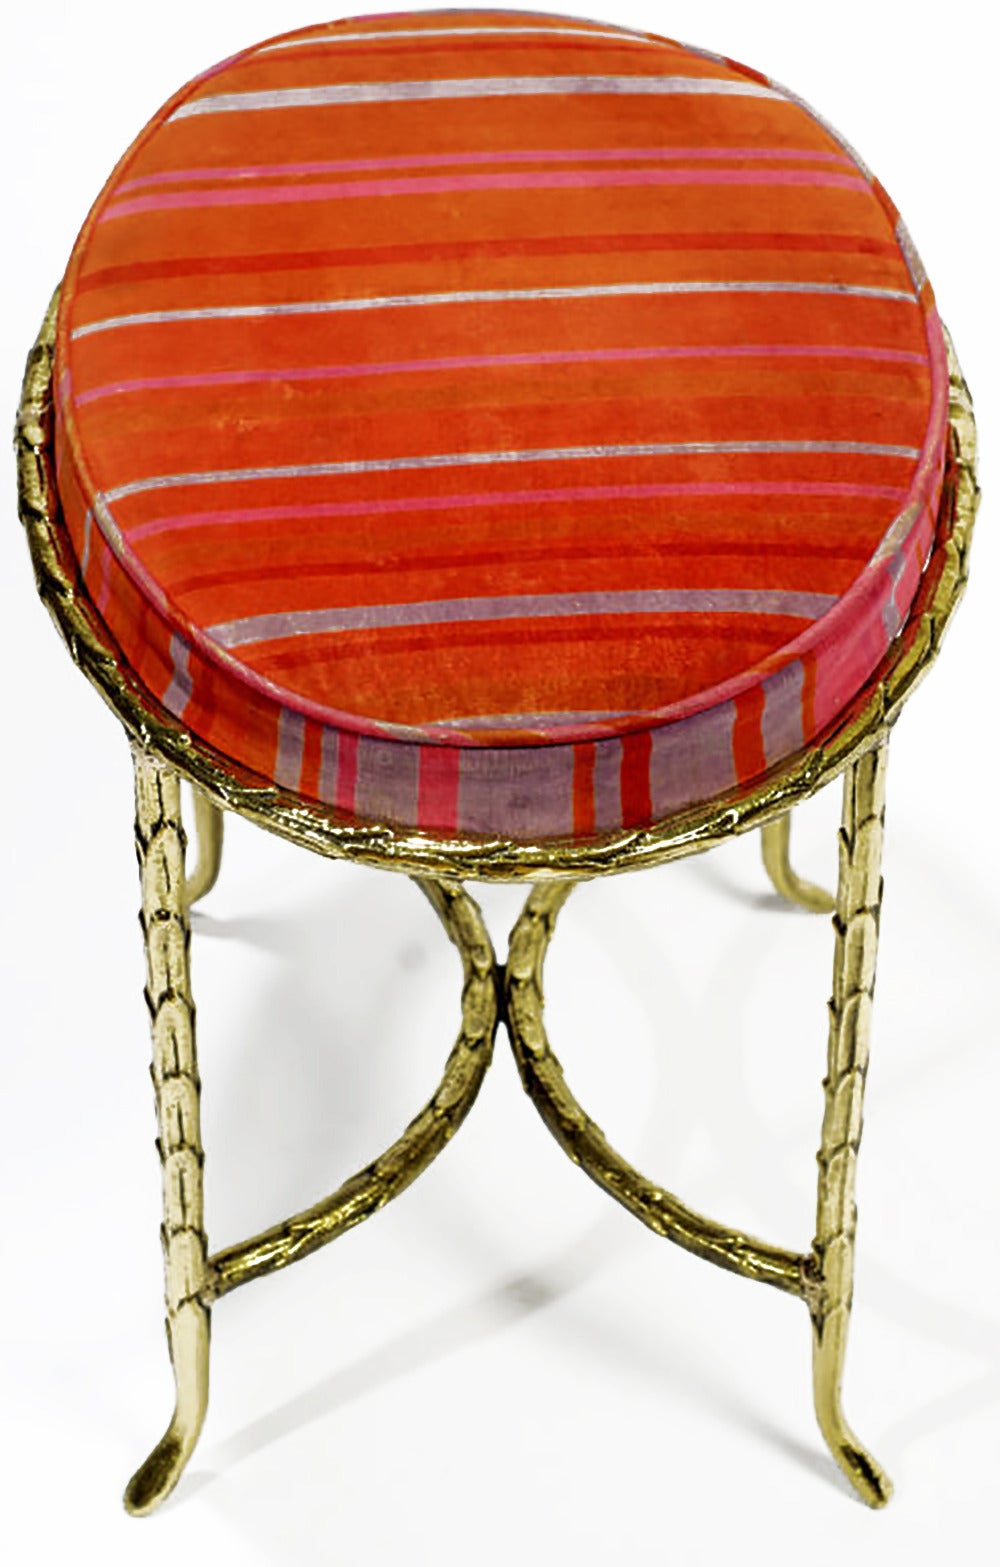 Oval Palm Design Bronze and Velvet Stool  3